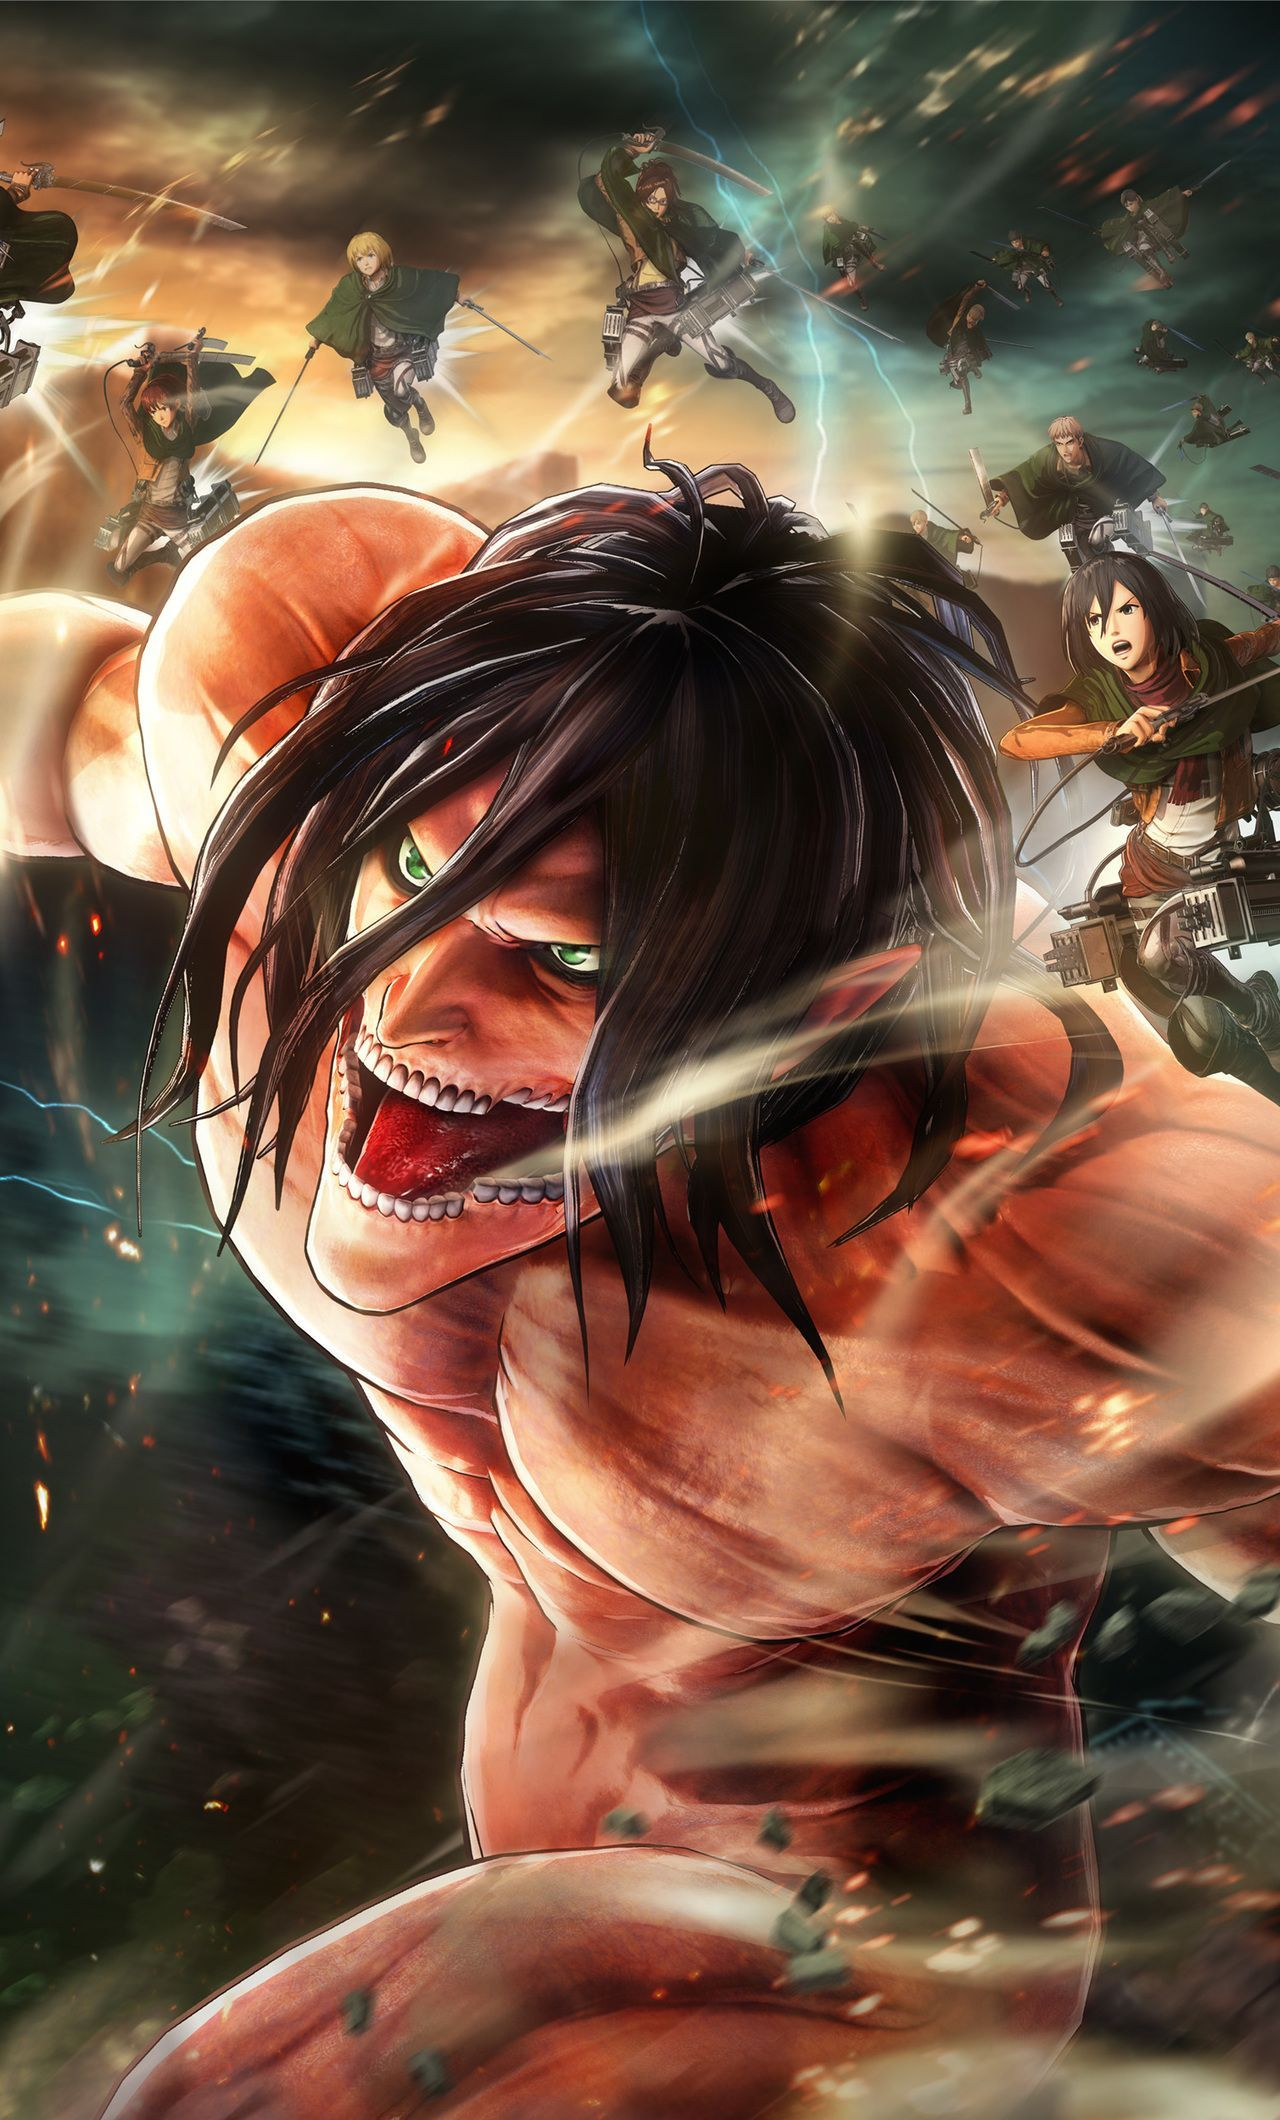 Download For Free On All Your Devices Computer Smartphone Or Tablet You Can Set Shingeki No K Attack On Titan Art Attack On Titan Anime Attack On Titan Fanart